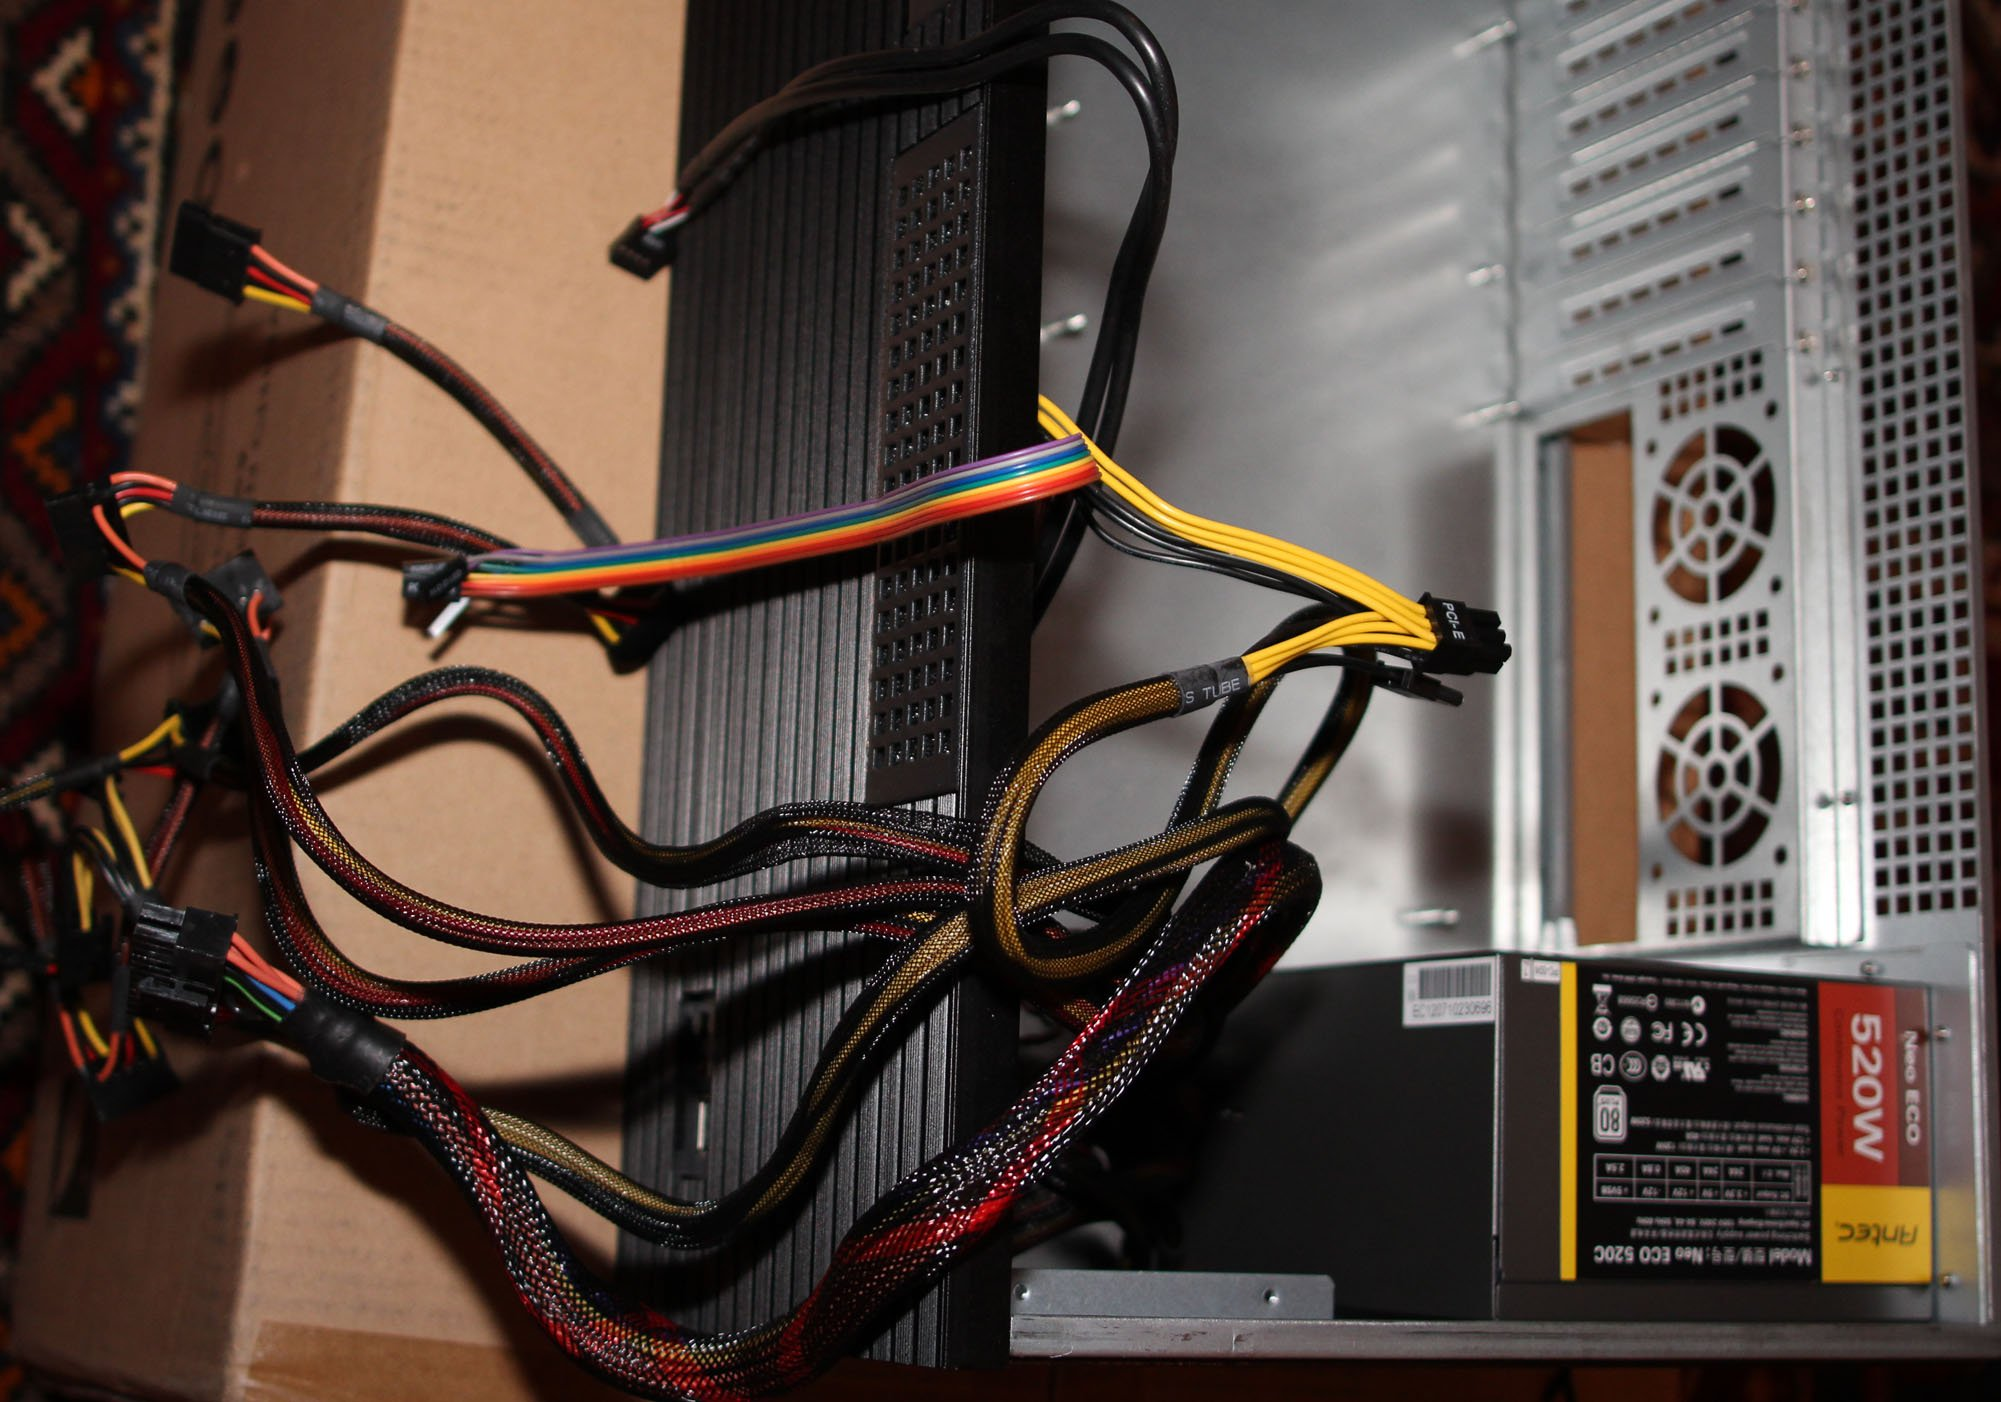 Htpc Make That Ht Gaming Workstation Build Thread Avs Forum Bypass Wiring Cabinet With Speaker Wire Home Theater Motherboard Fits But Barely And I Have To Shove Wires Under The Front Fans Had Go 2 Be Able Connect Sata Cables